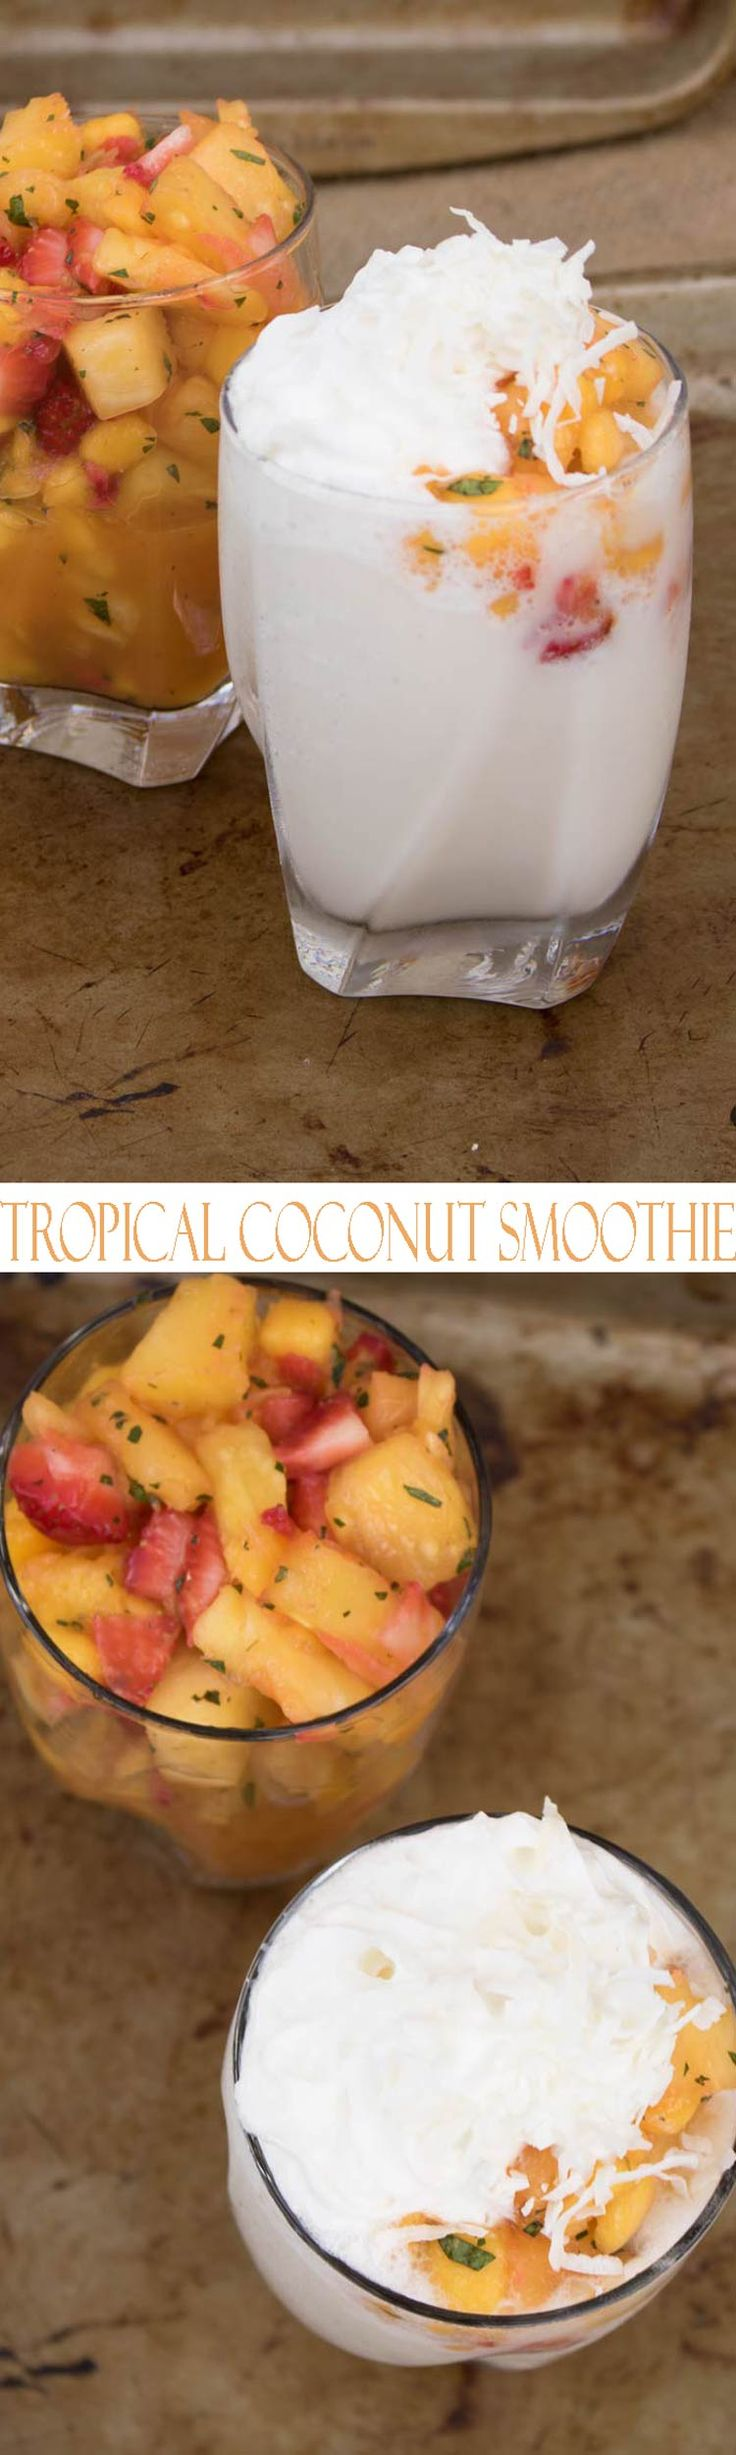 Healthy Mango Smoothie with Coconut and Pineapple. Simple and decadent tropical smoothie recipes with fresh fruit. Pineapple, mango and strawberries blended with coconut make this a refreshing smoothie that is a perfect summer drink. Grab a spoon and a straw and dig in to this delicious smoothie.